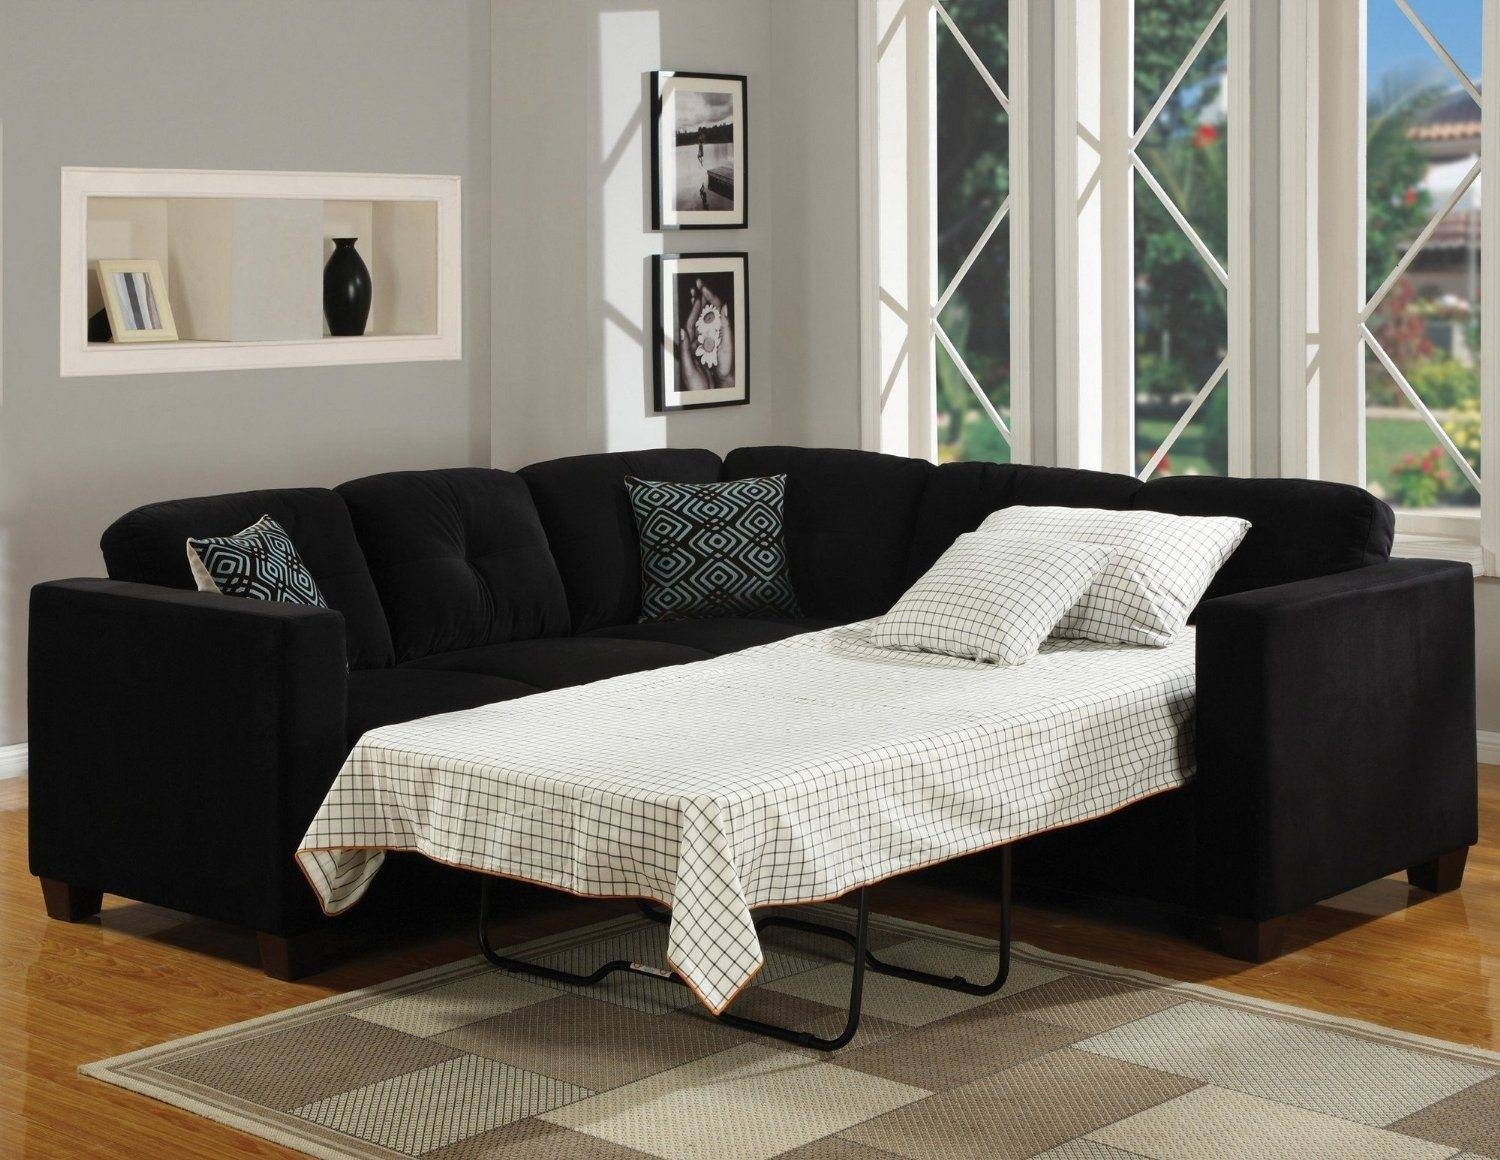 Bedroom: Exquisite Amour Sectional Couch With Pull Out Bed For for Mini Sofa Sleepers (Image 1 of 30)